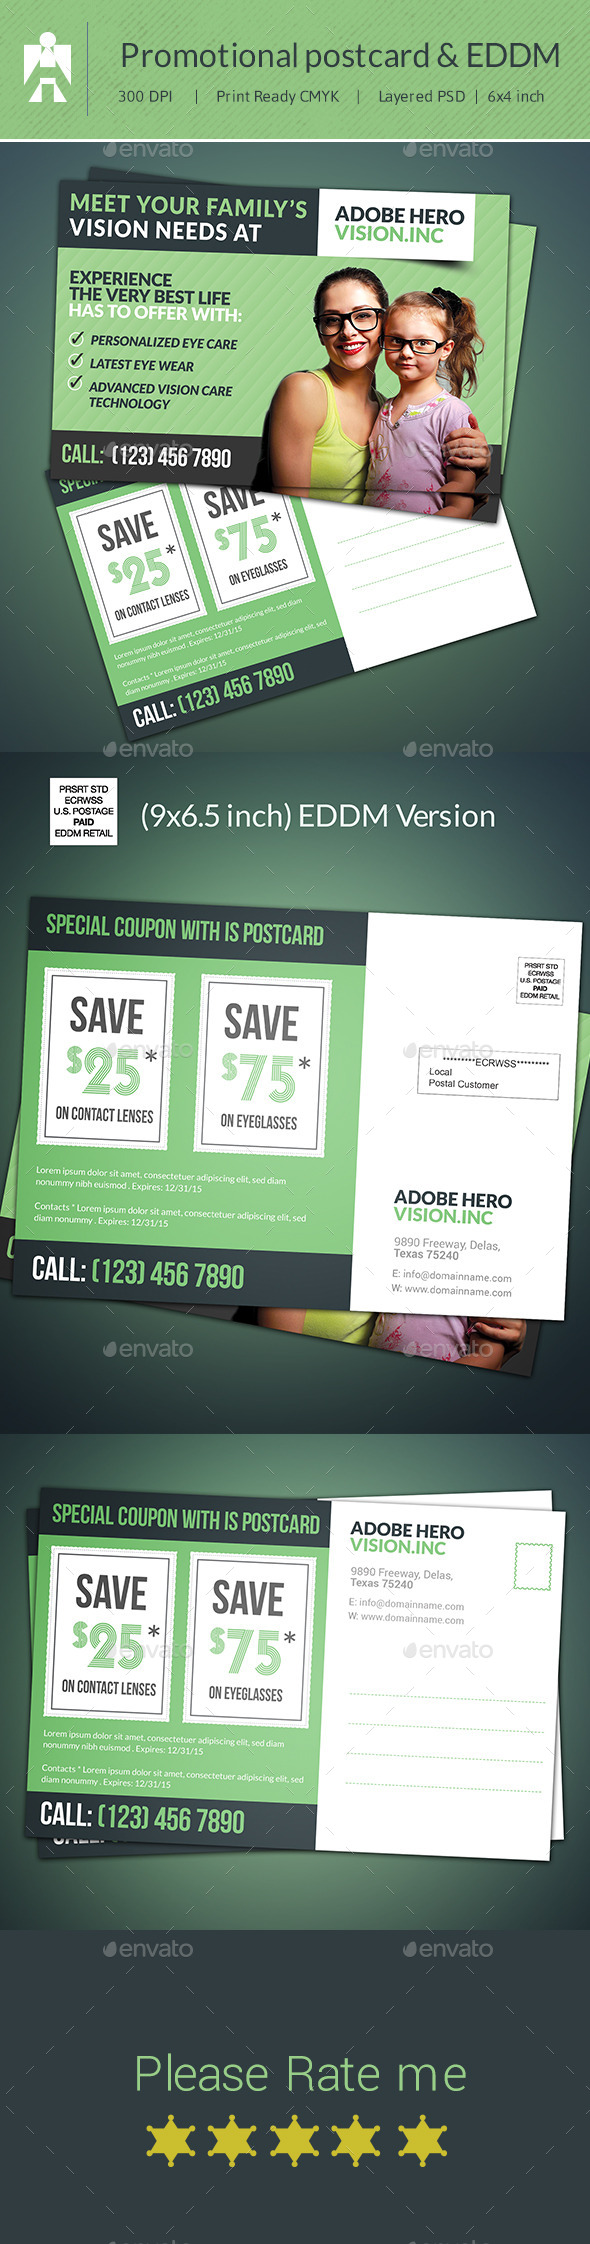 eddm postcard template postcard amp direct mail eddm by adobehero graphicriver 21440